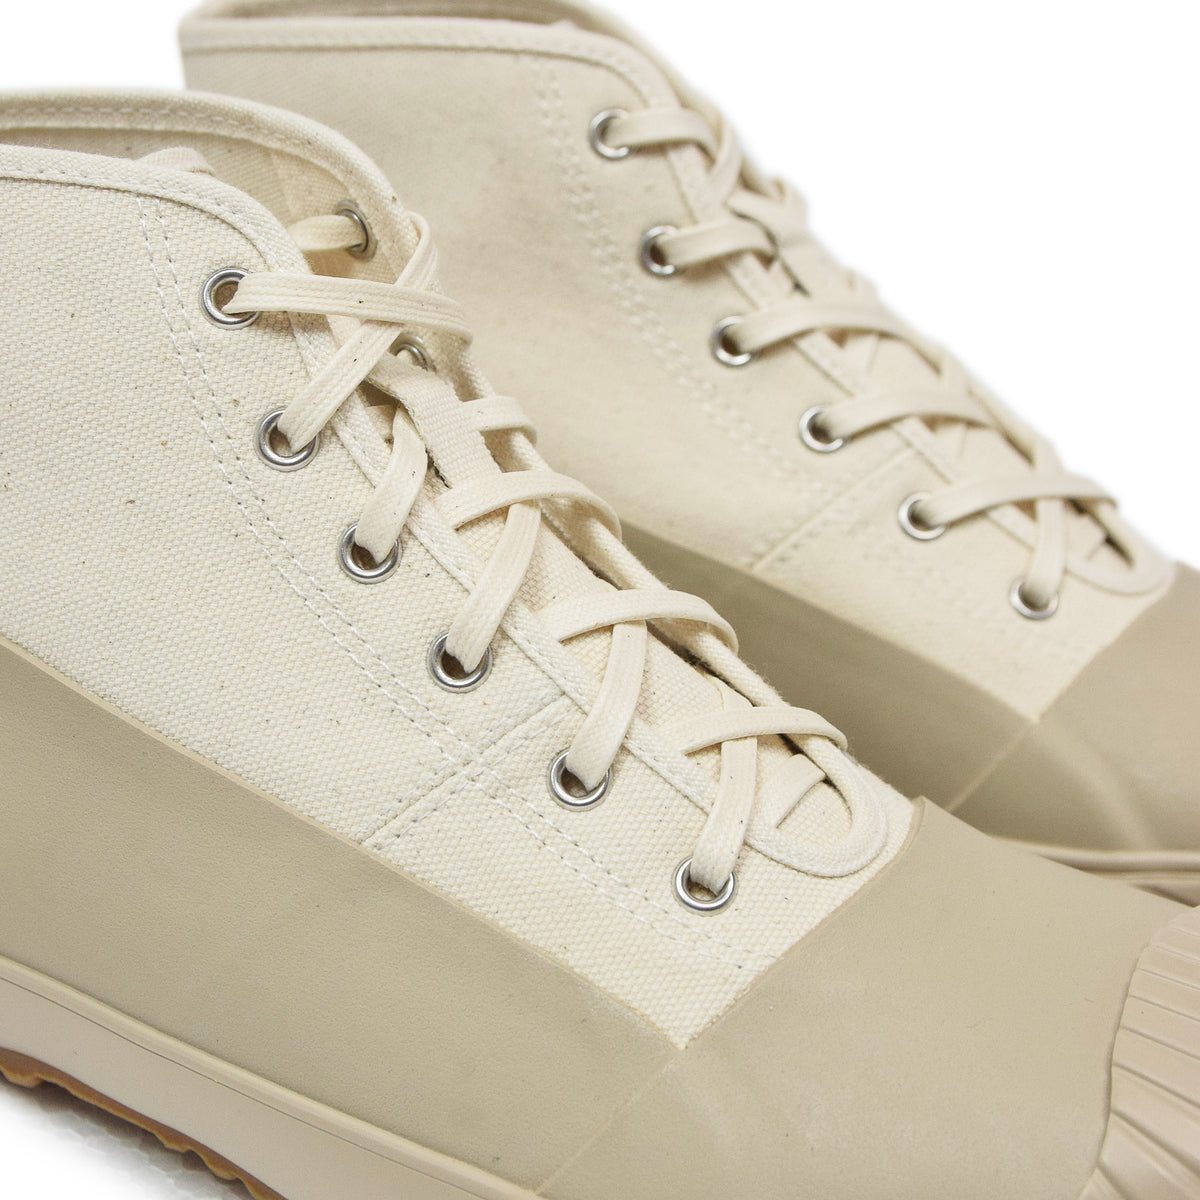 Moonstar Vulcanised Alweather Boot Beige Made In Japan laces